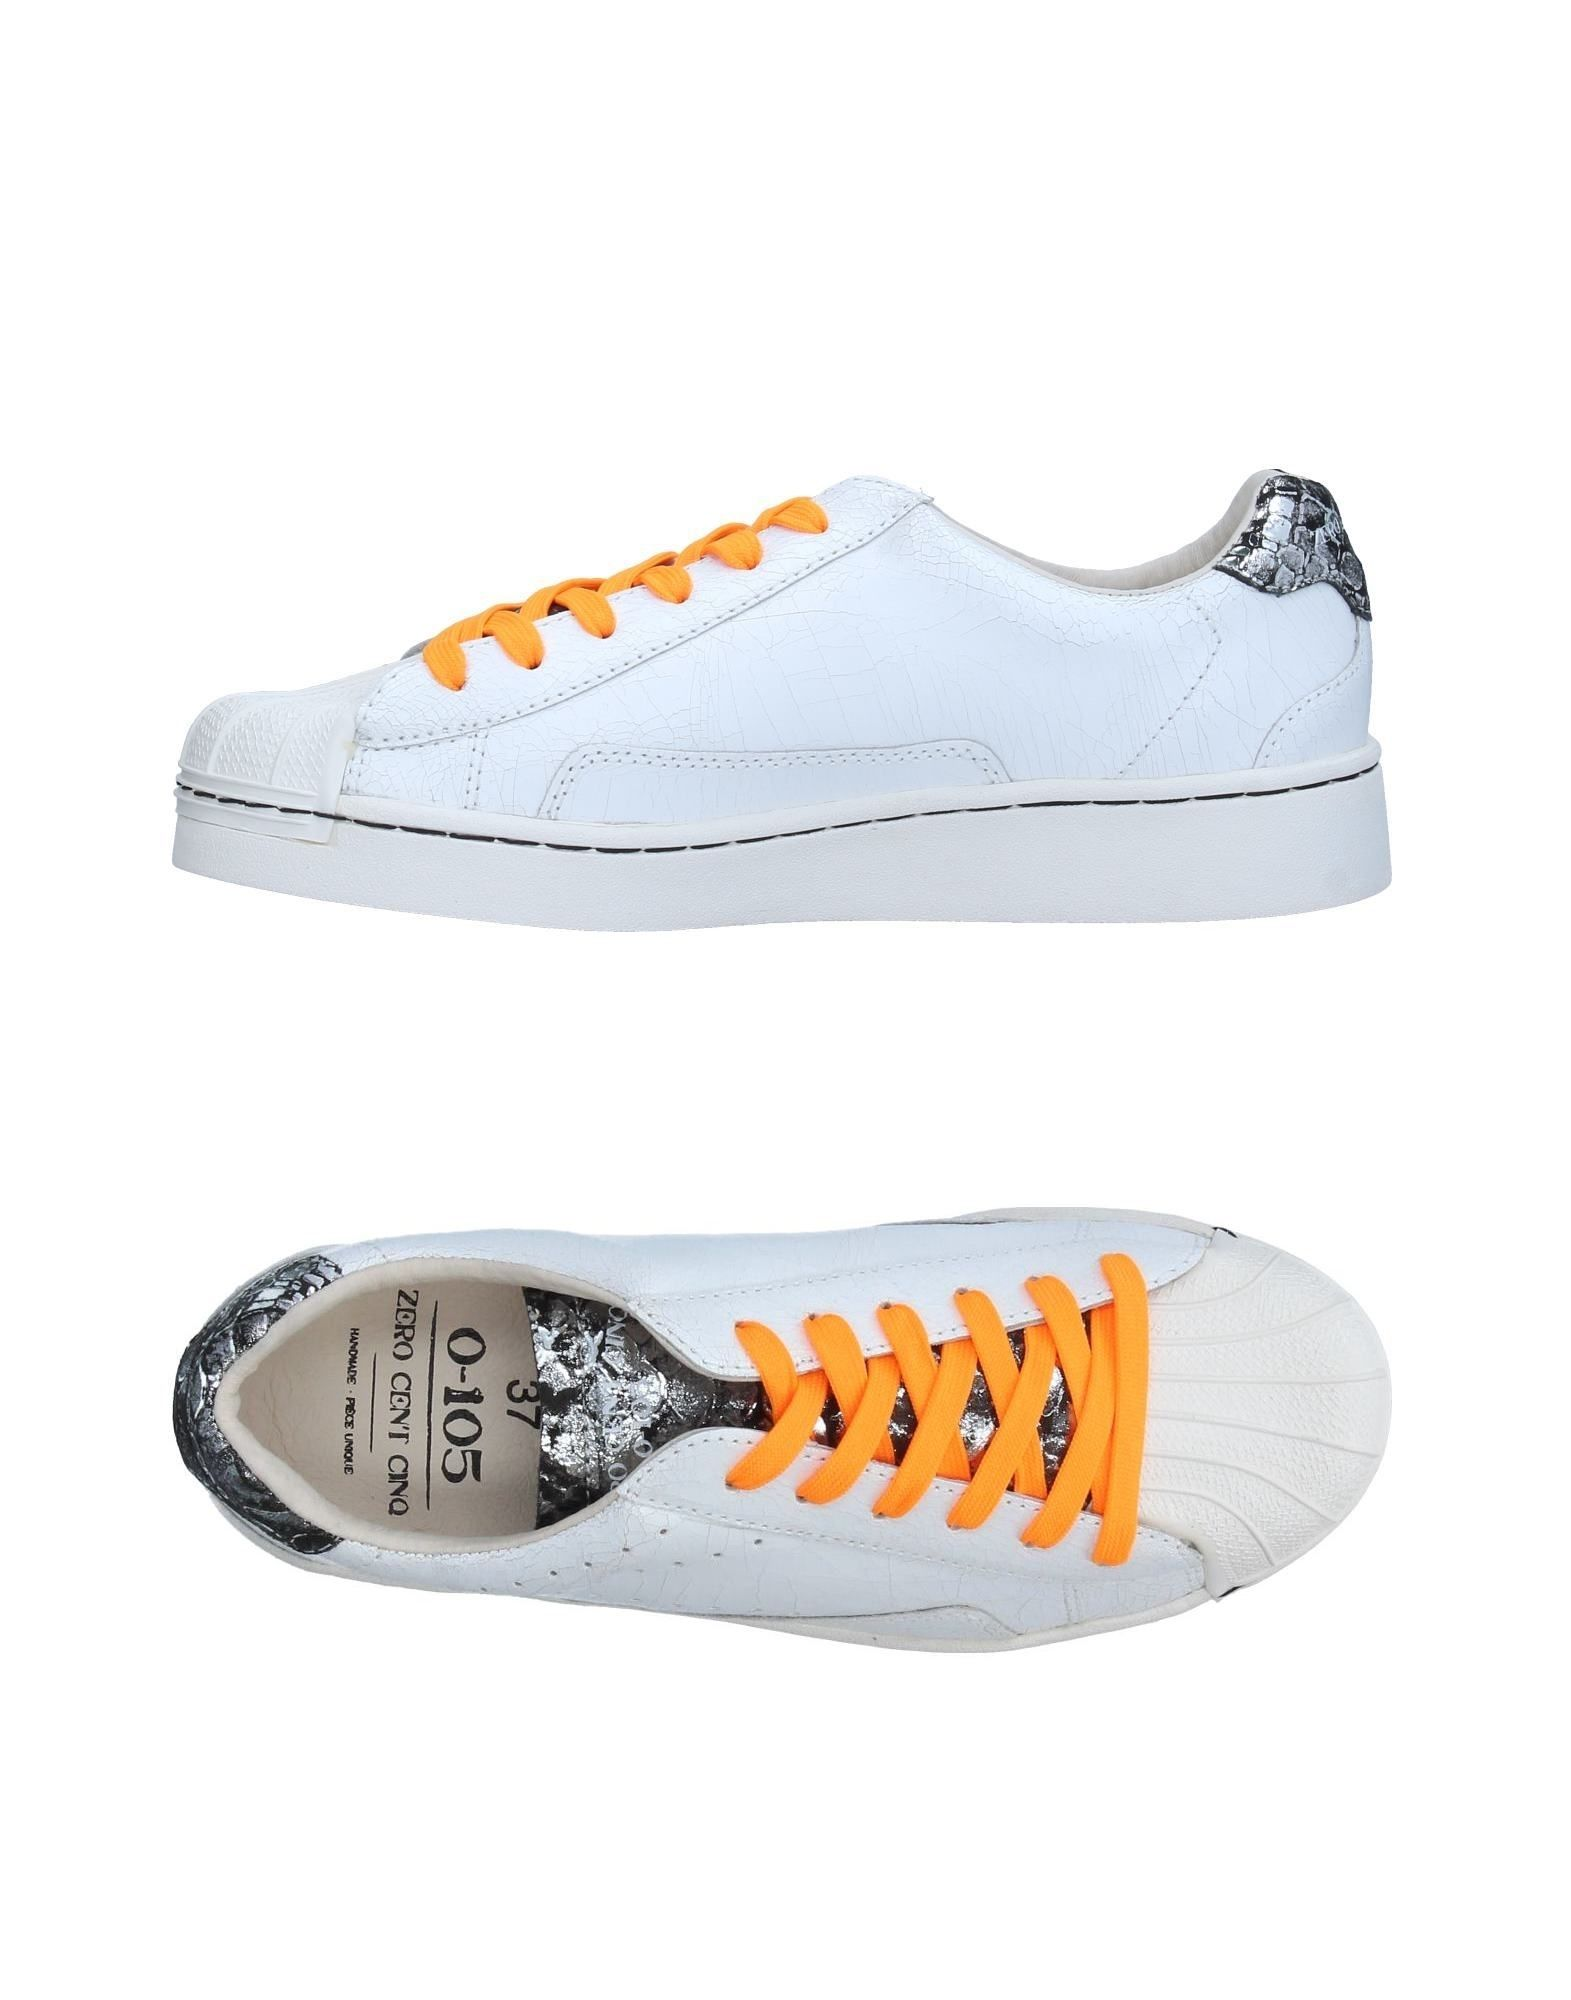 0-105 Zero Cent Cinq Sneakers - Women 0-105 0-105 0-105 Zero Cent Cinq Sneakers online on  Canada - 11335186PS d67a9c